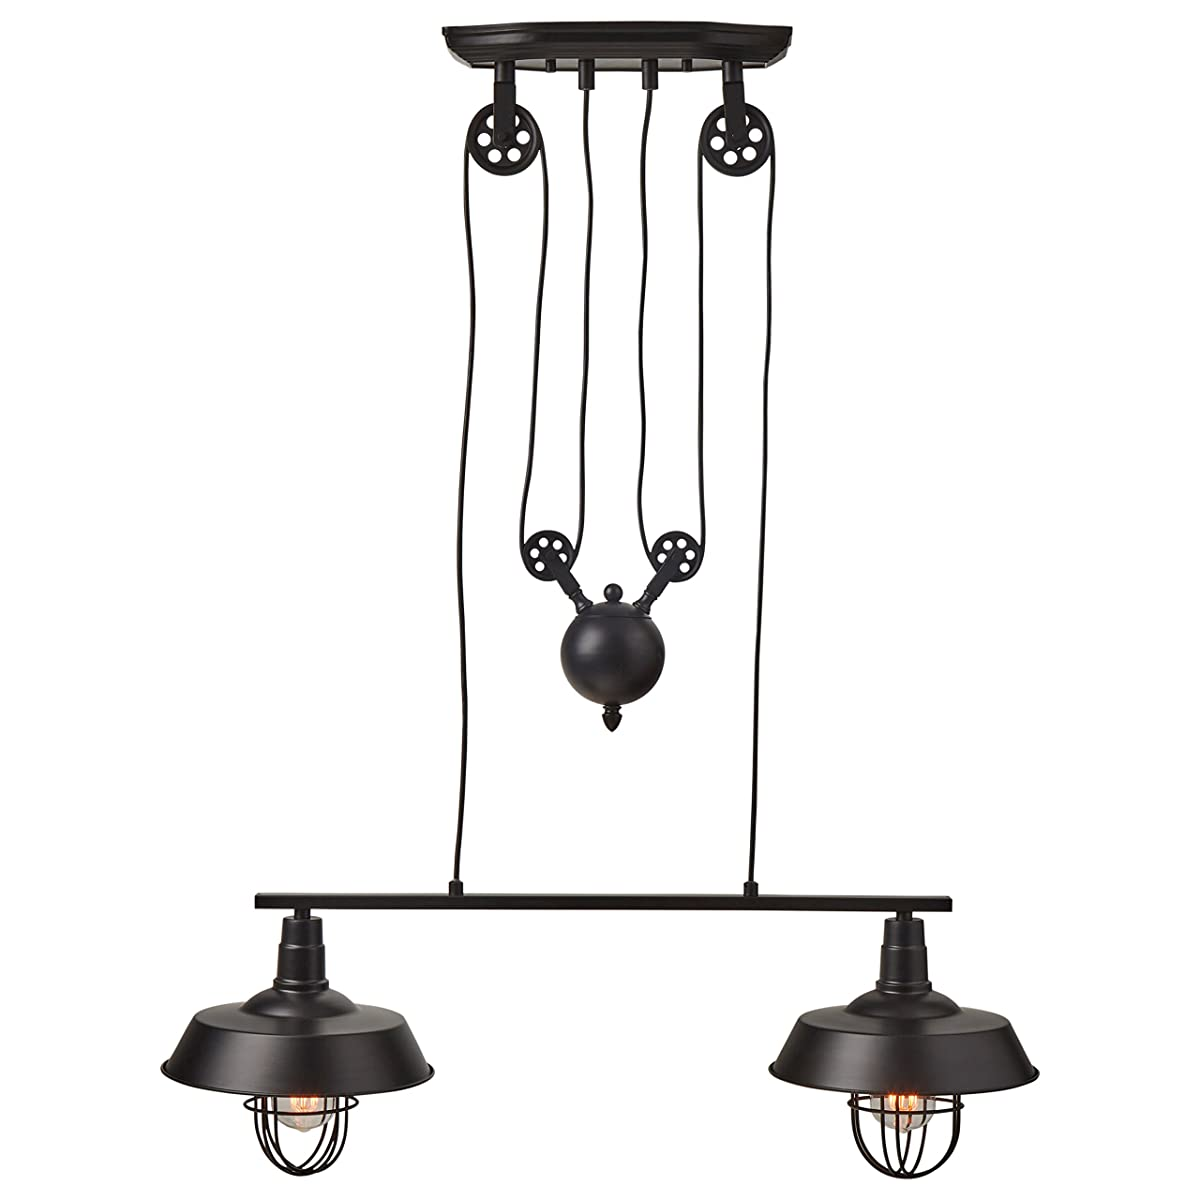 "Stone & Beam Farmhouse Pulley Double Pendant With Bulbs, 40"" - 65""H, Black"